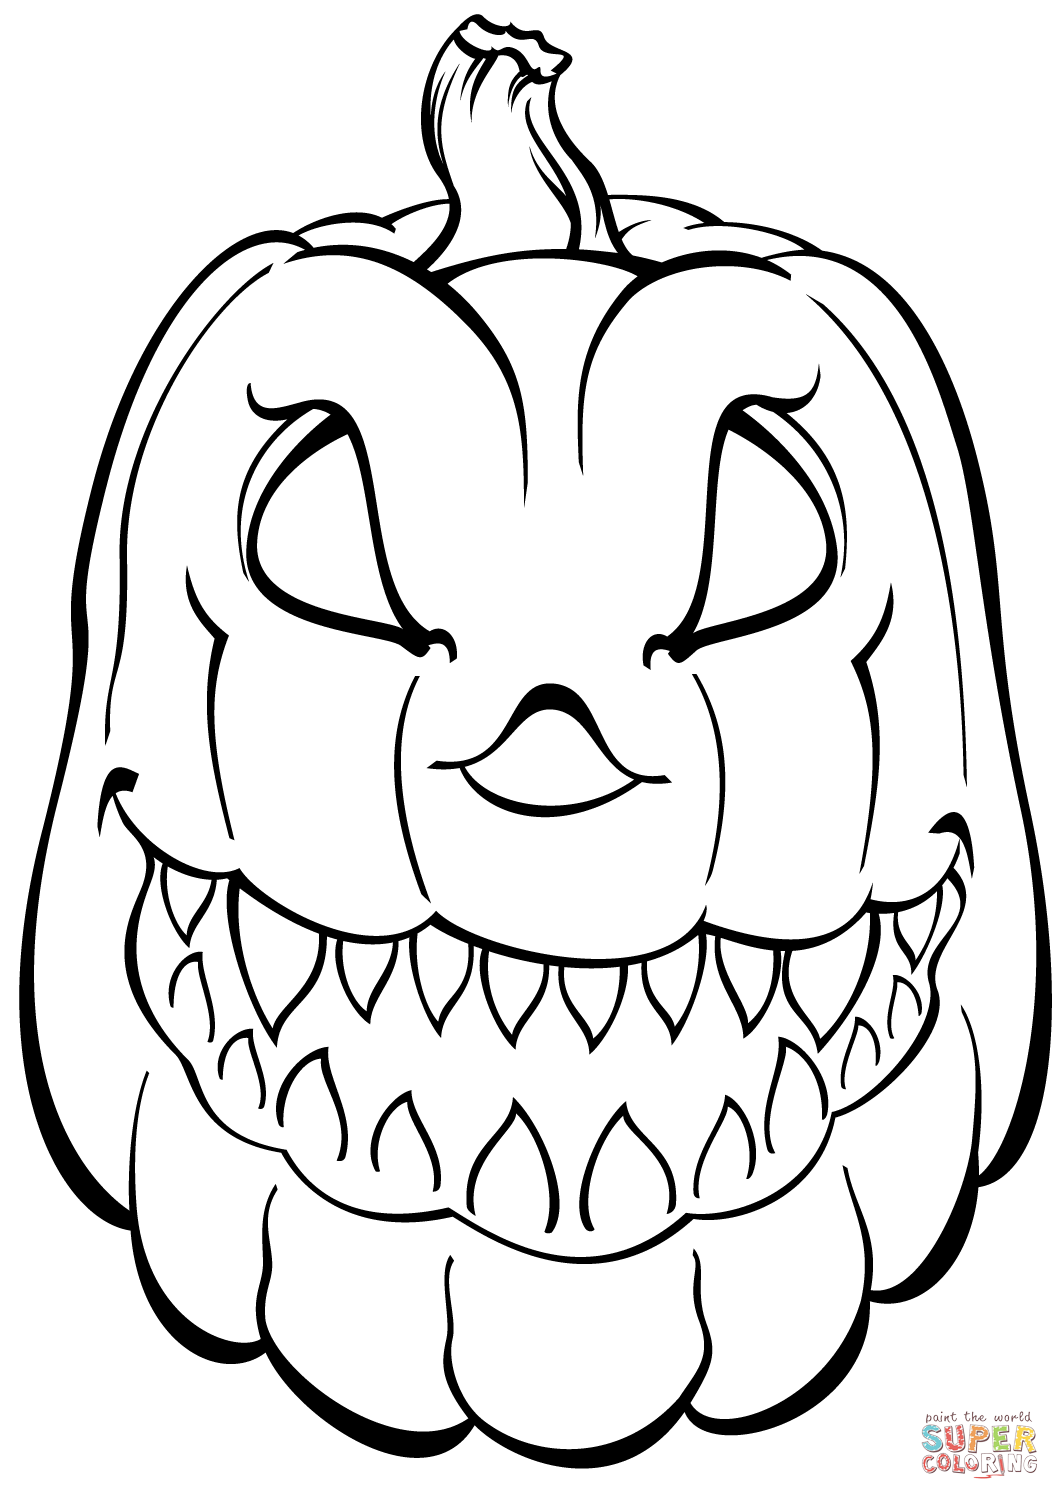 Scary coloring #16, Download drawings